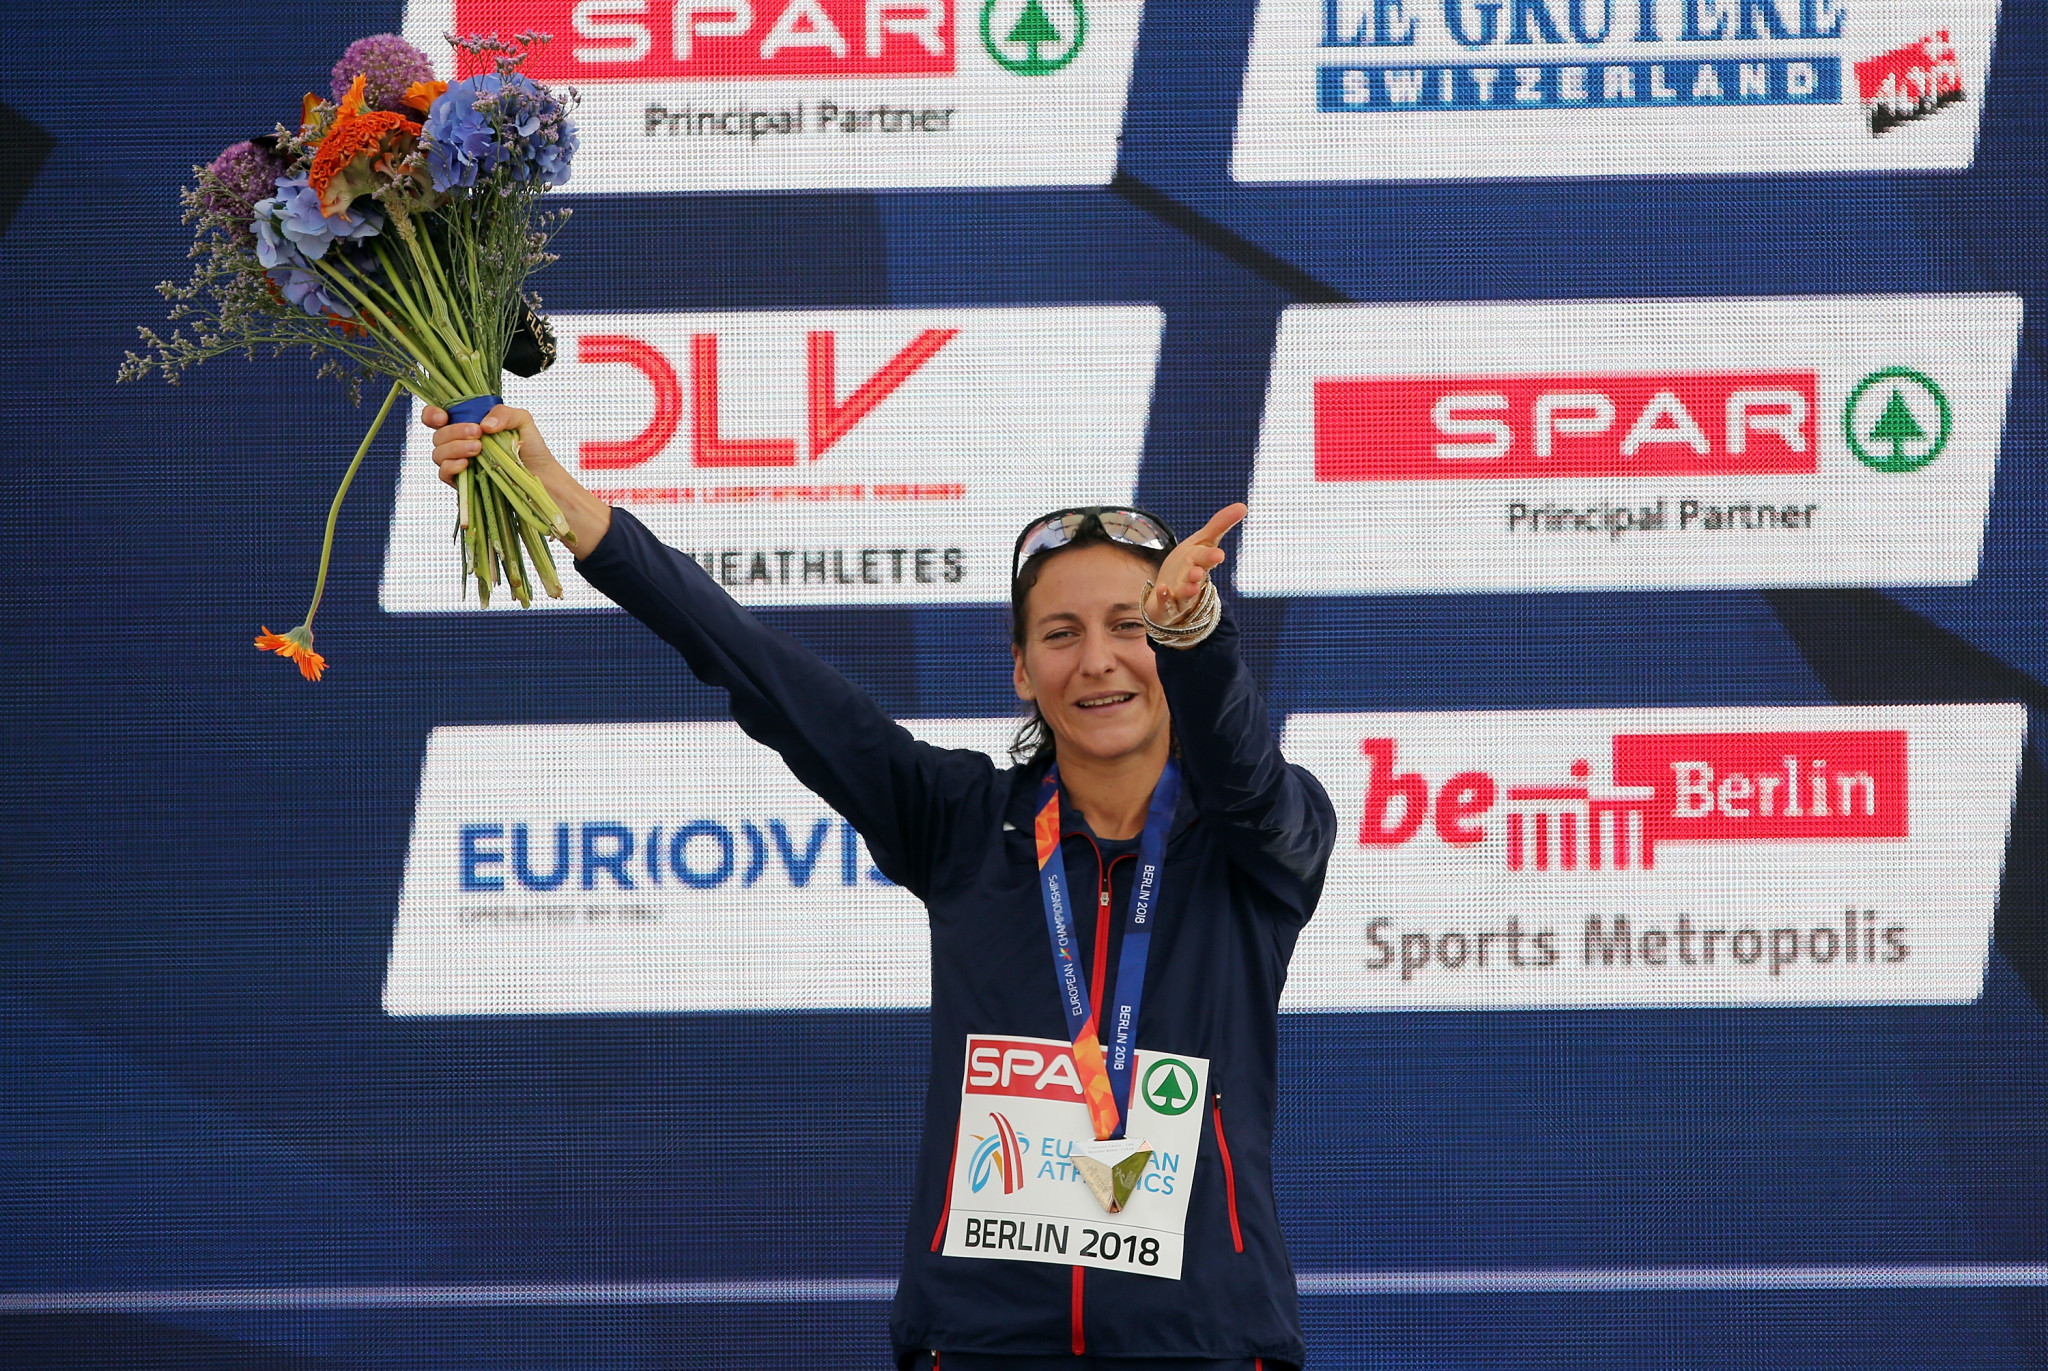 France's Clemence Calvin took silver in the women's marathon at the 2018 European Athletics Championships in Berlin ©Getty Images